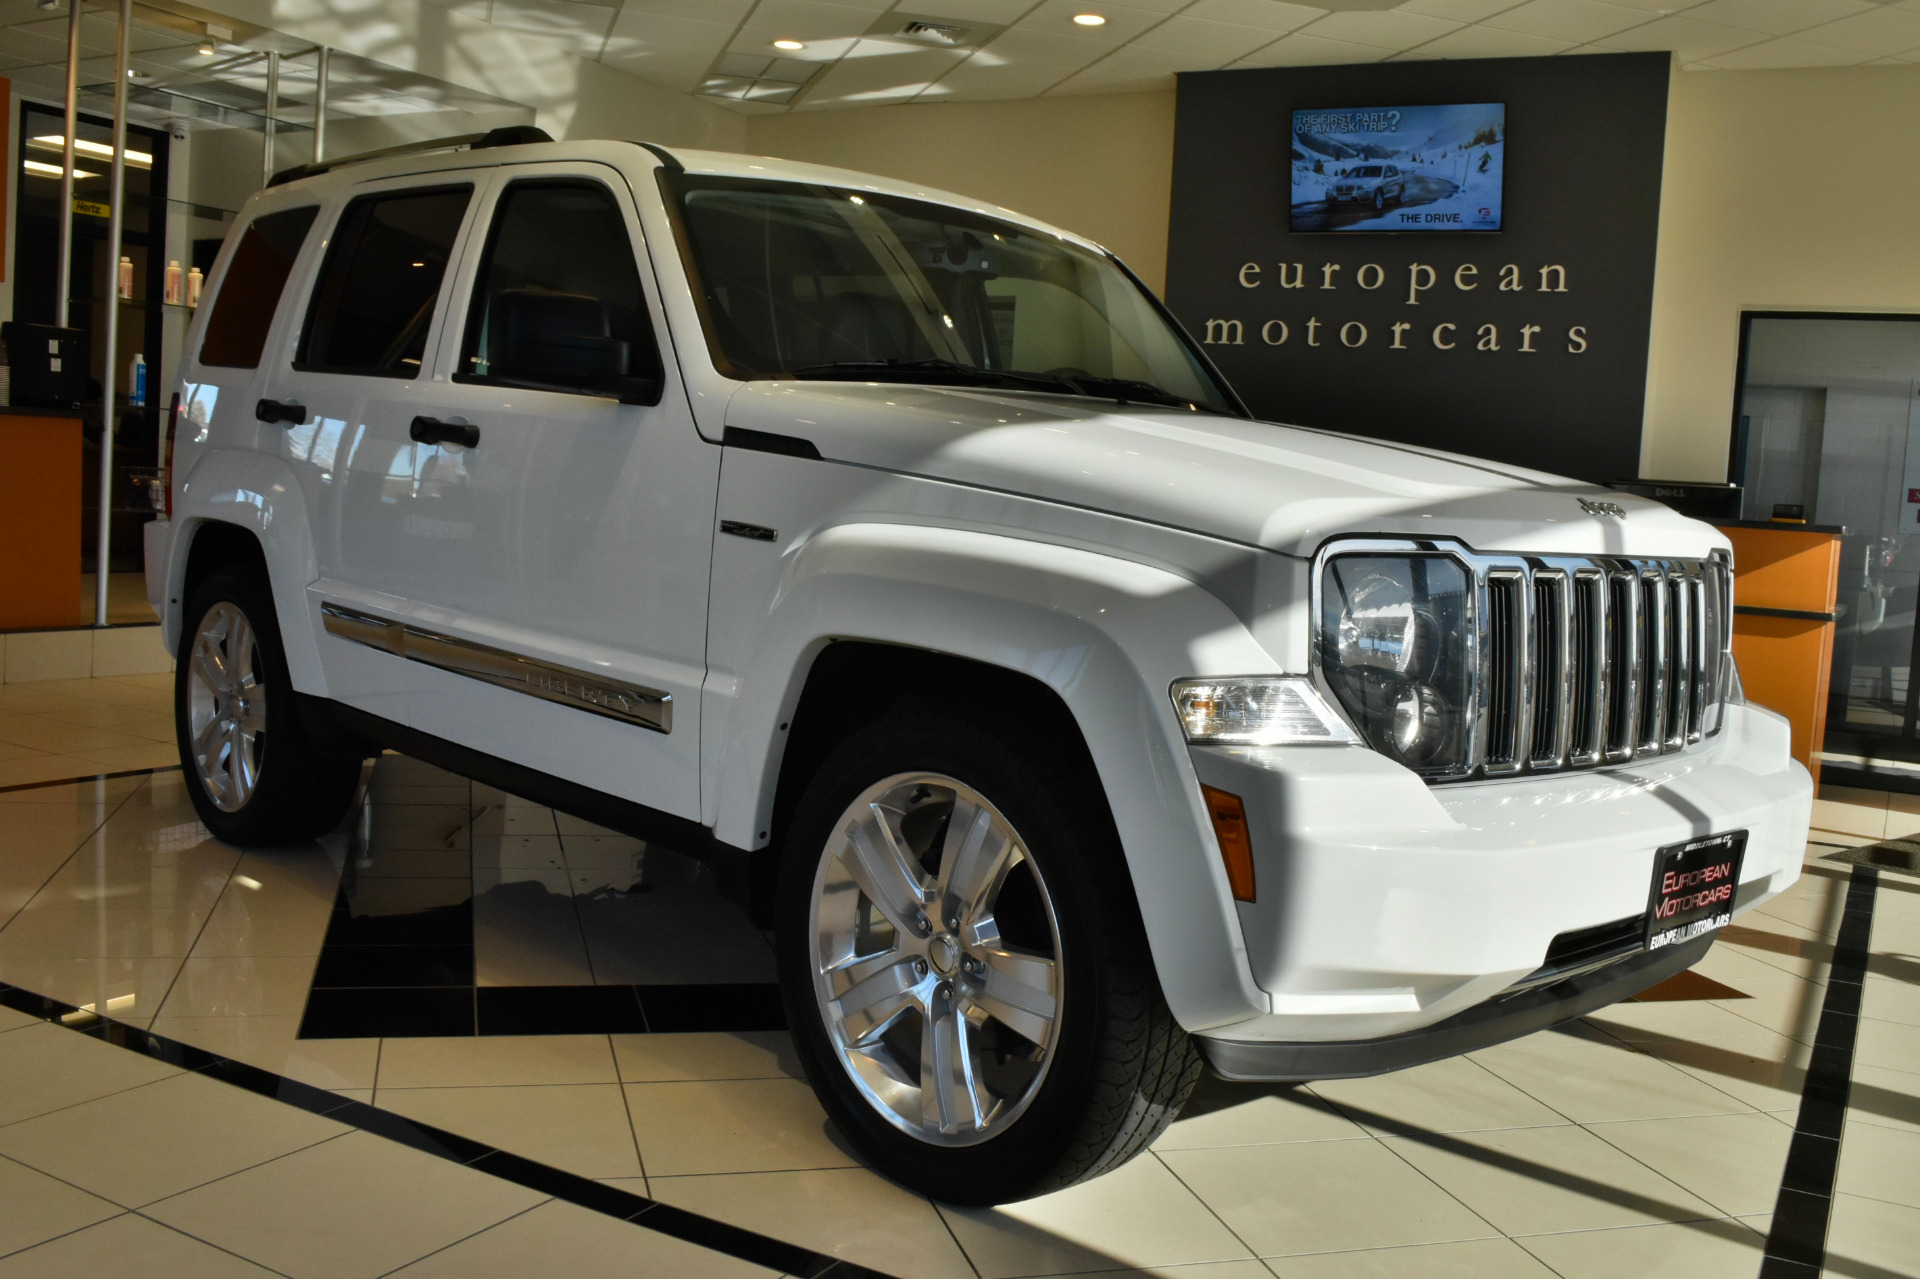 2012 jeep liberty jet edition for sale near middletown ct ct jeep dealer stock 118792. Black Bedroom Furniture Sets. Home Design Ideas